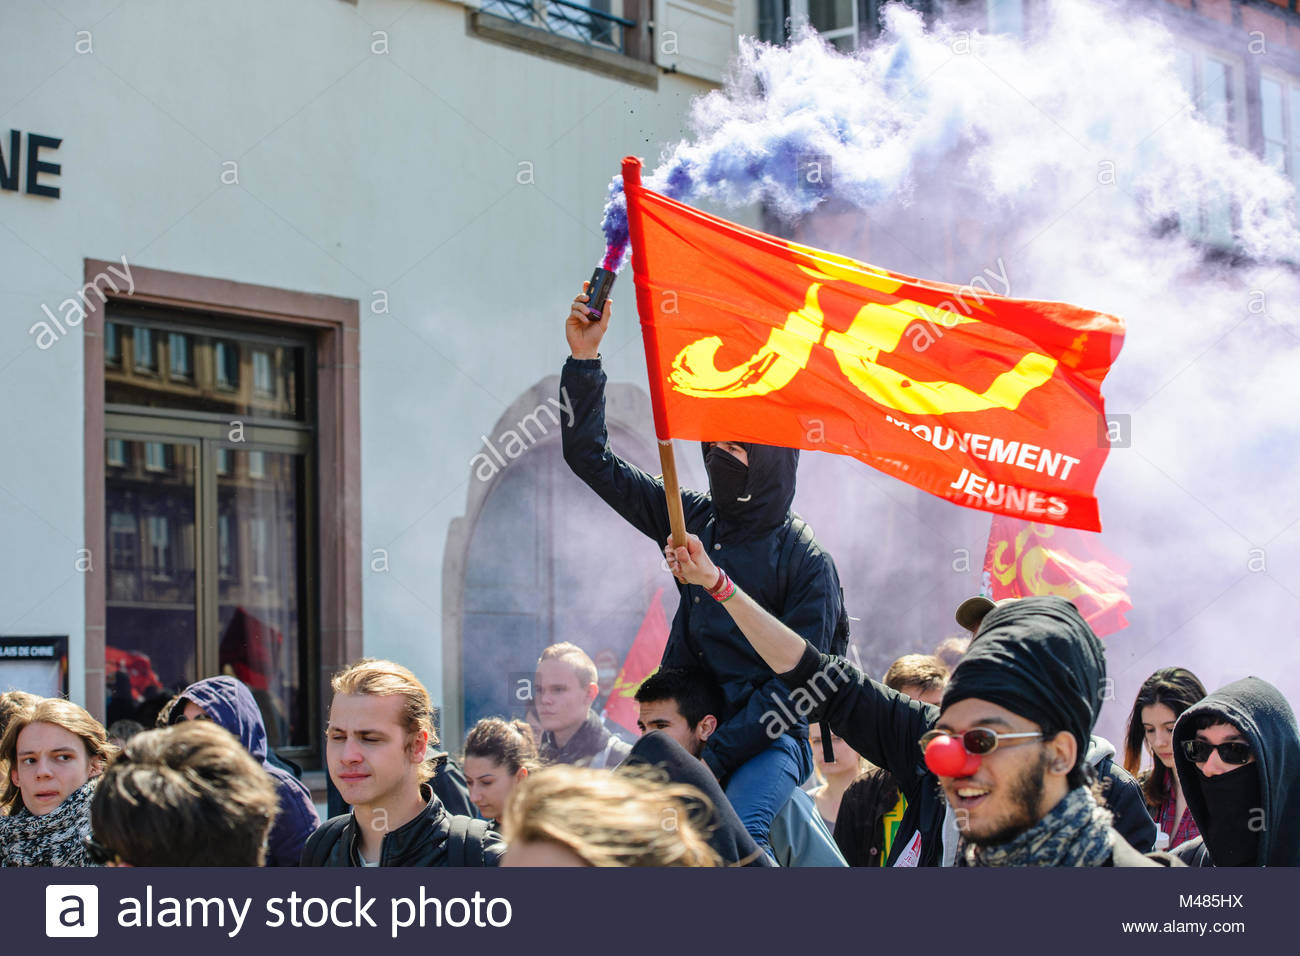 April protest against Labour reforms in France - Stock Image